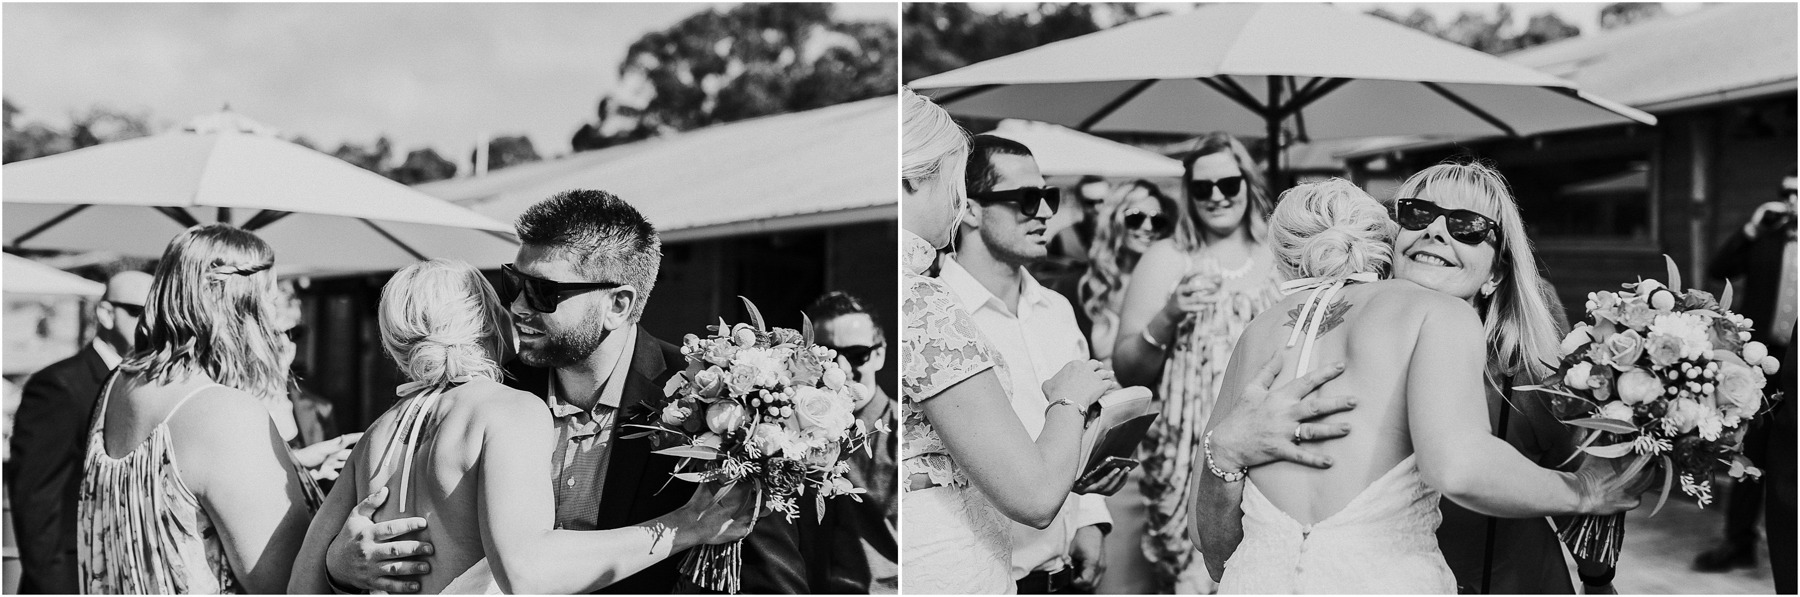 Courtney-Josh-Growwild-Bowral-southernhighlans-Wedding-52